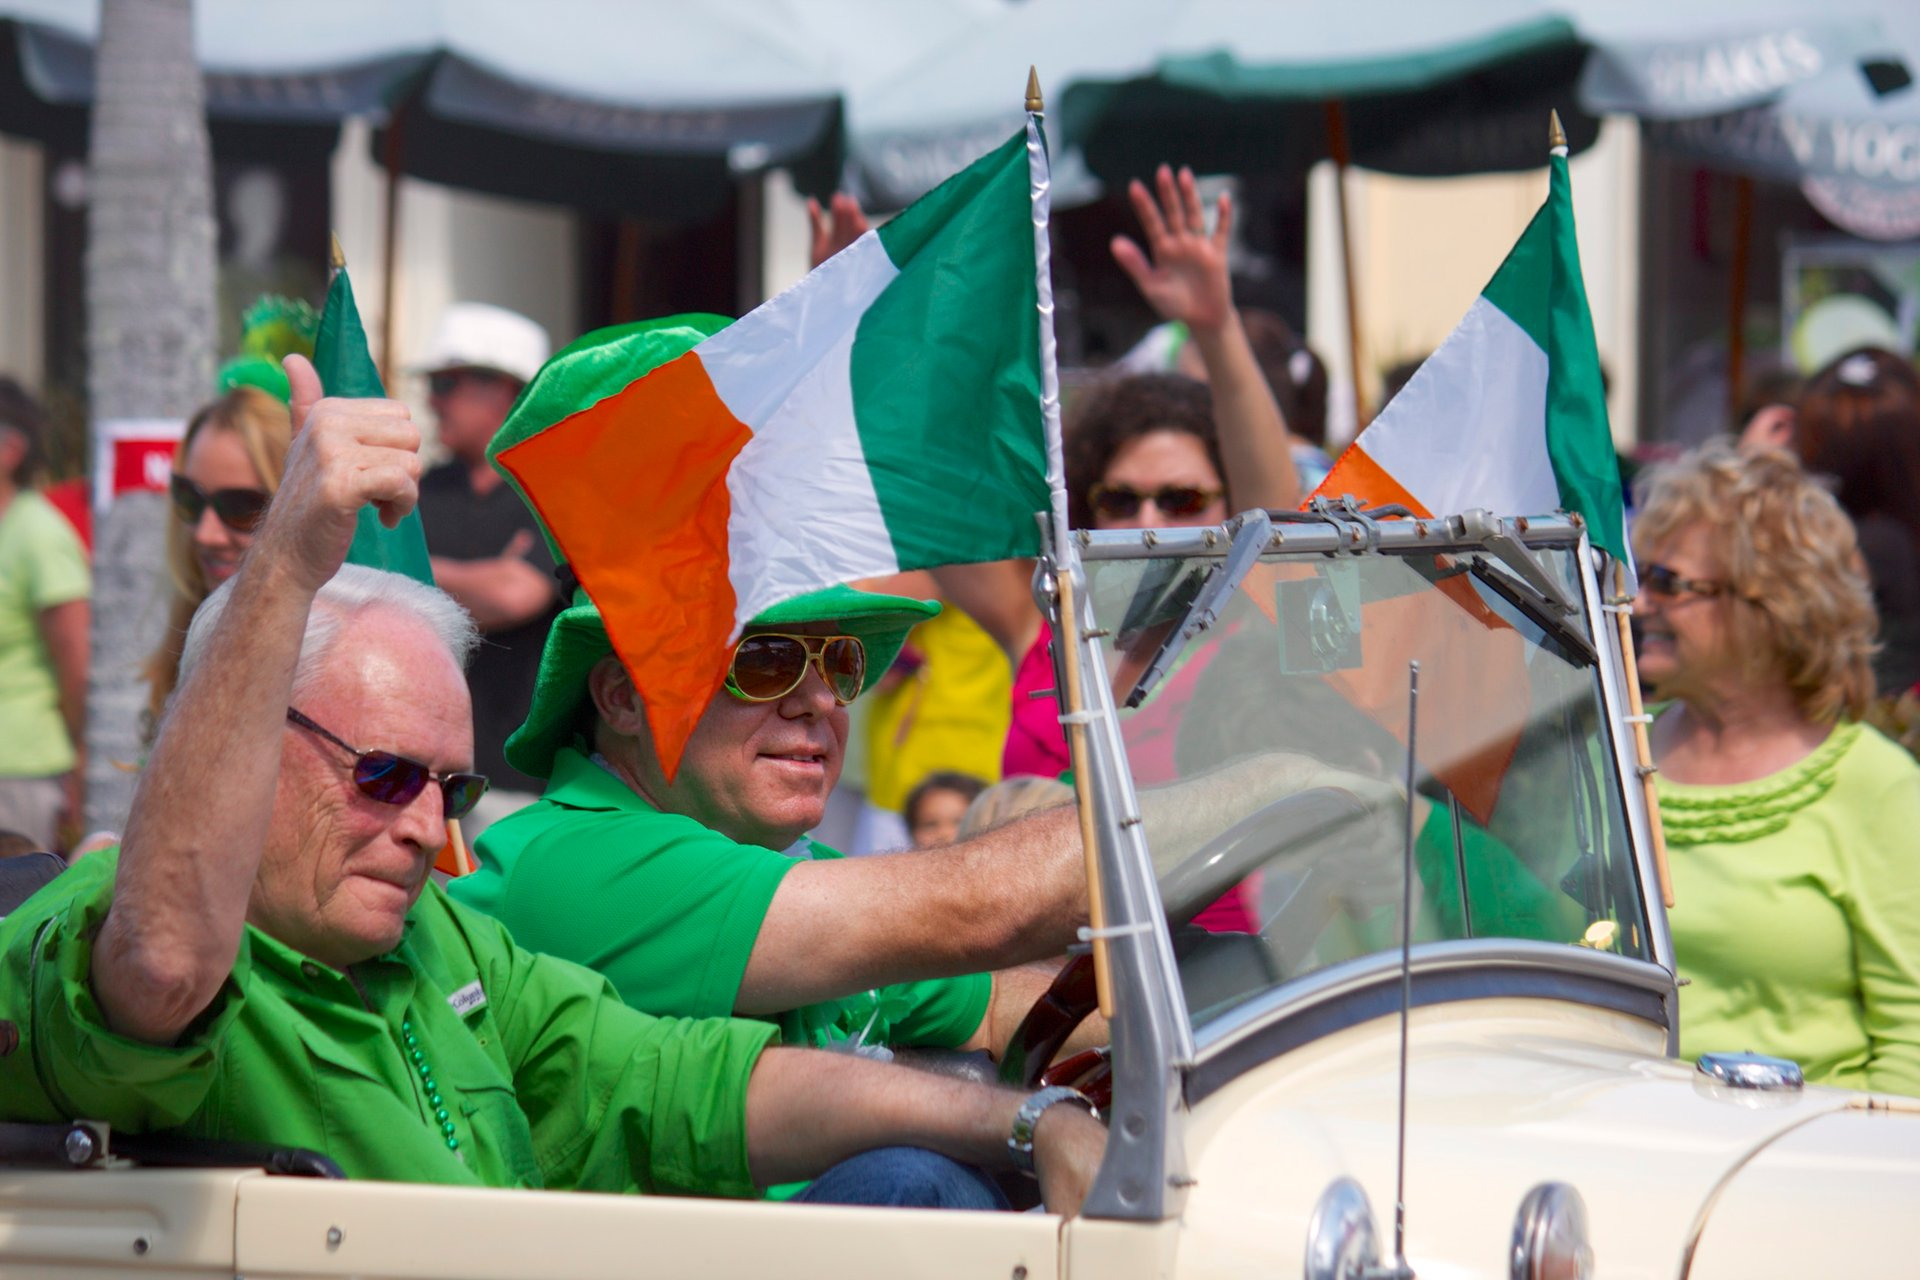 Naples St. Patrick's Day Parade in Florida - Best Season 2020